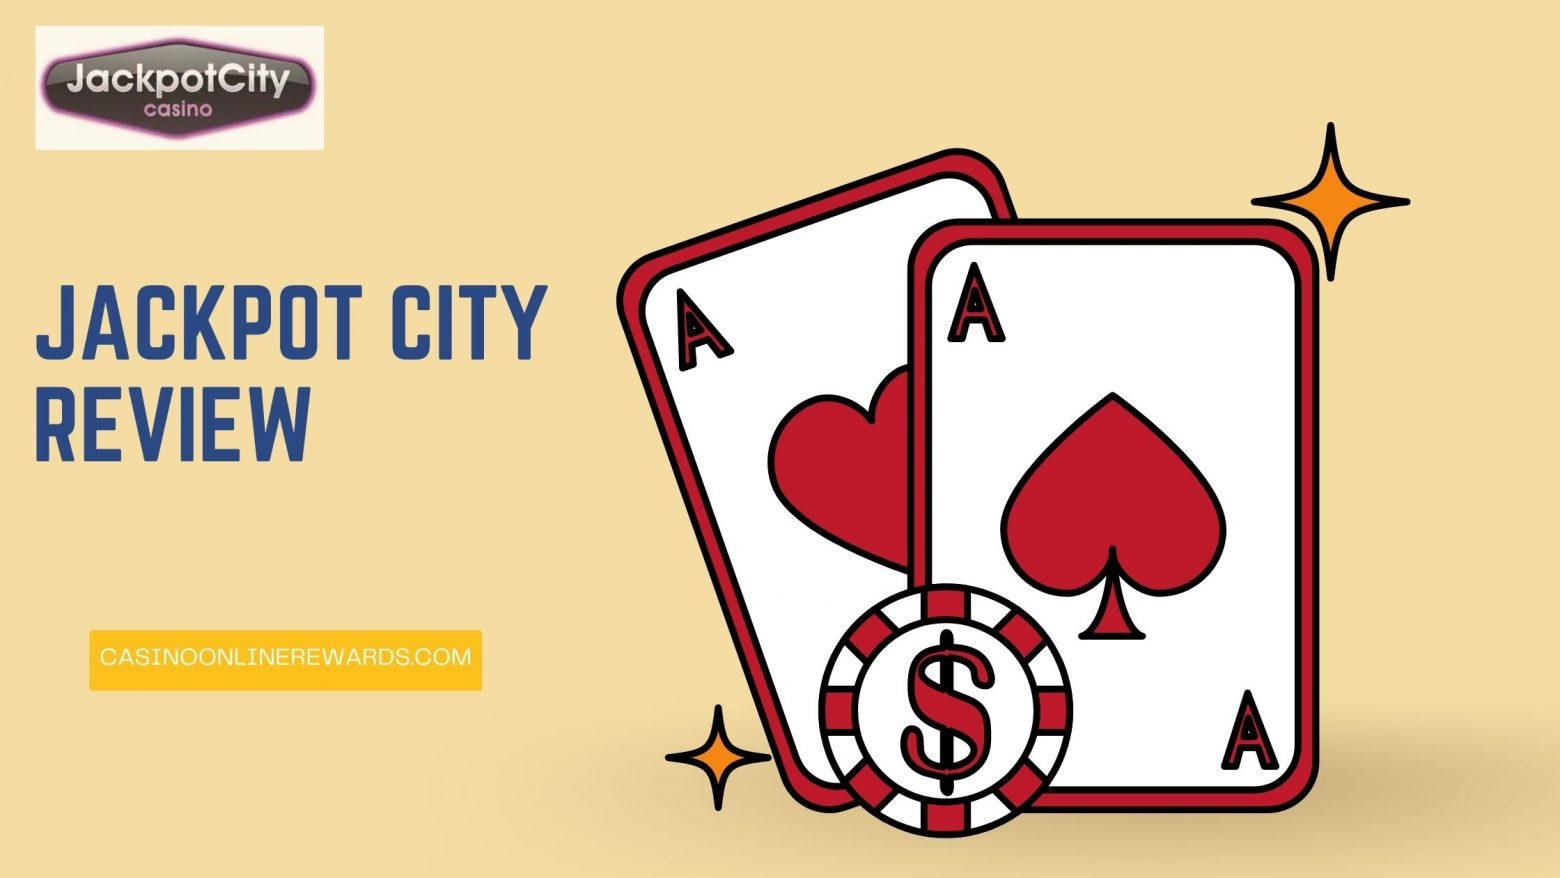 What The Jackpot City Review Offers